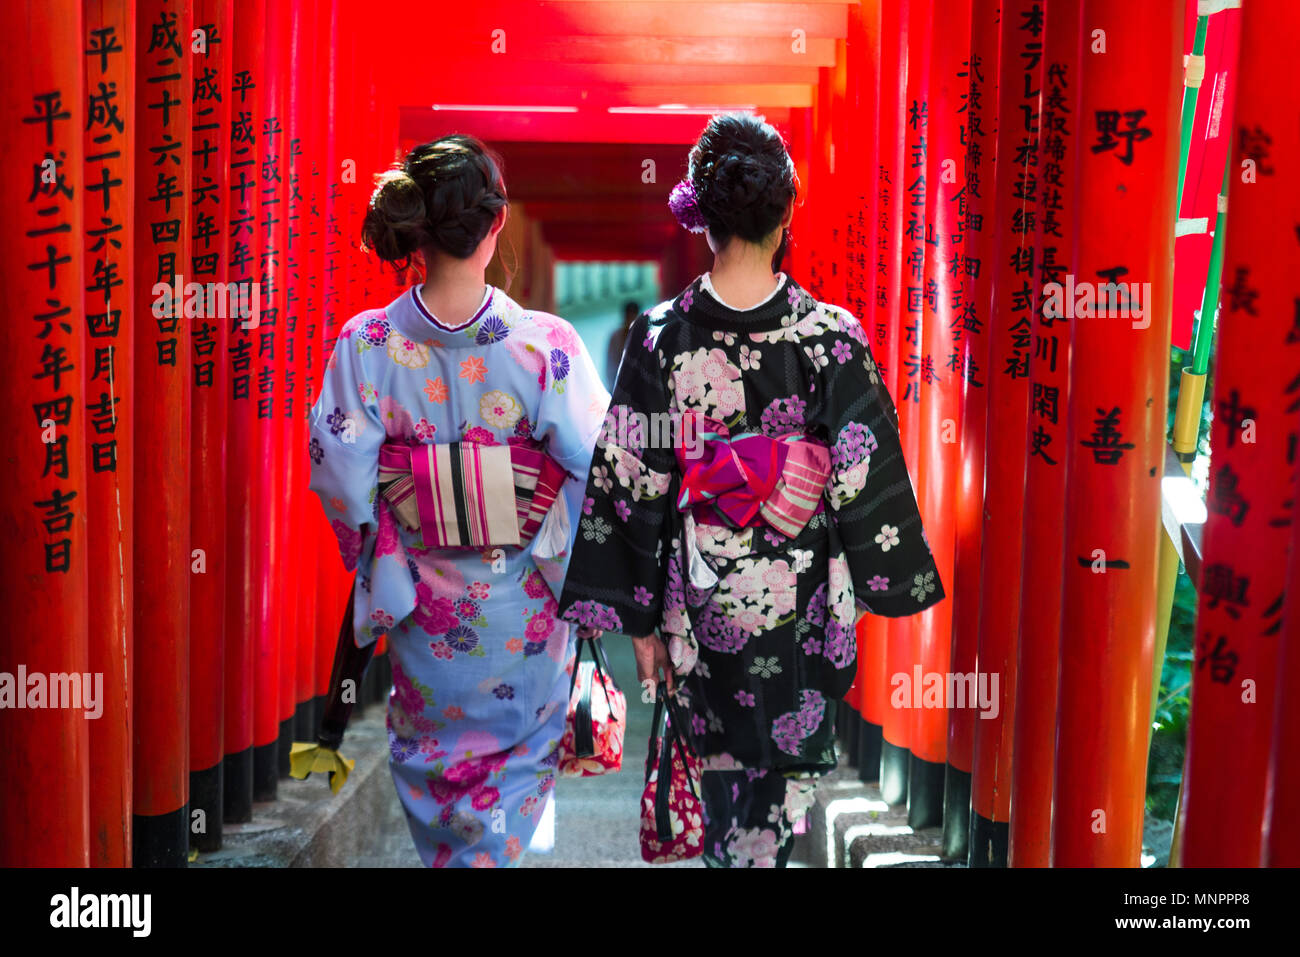 Two beautiful girls with traditional dress walking outdoors - Stock Image